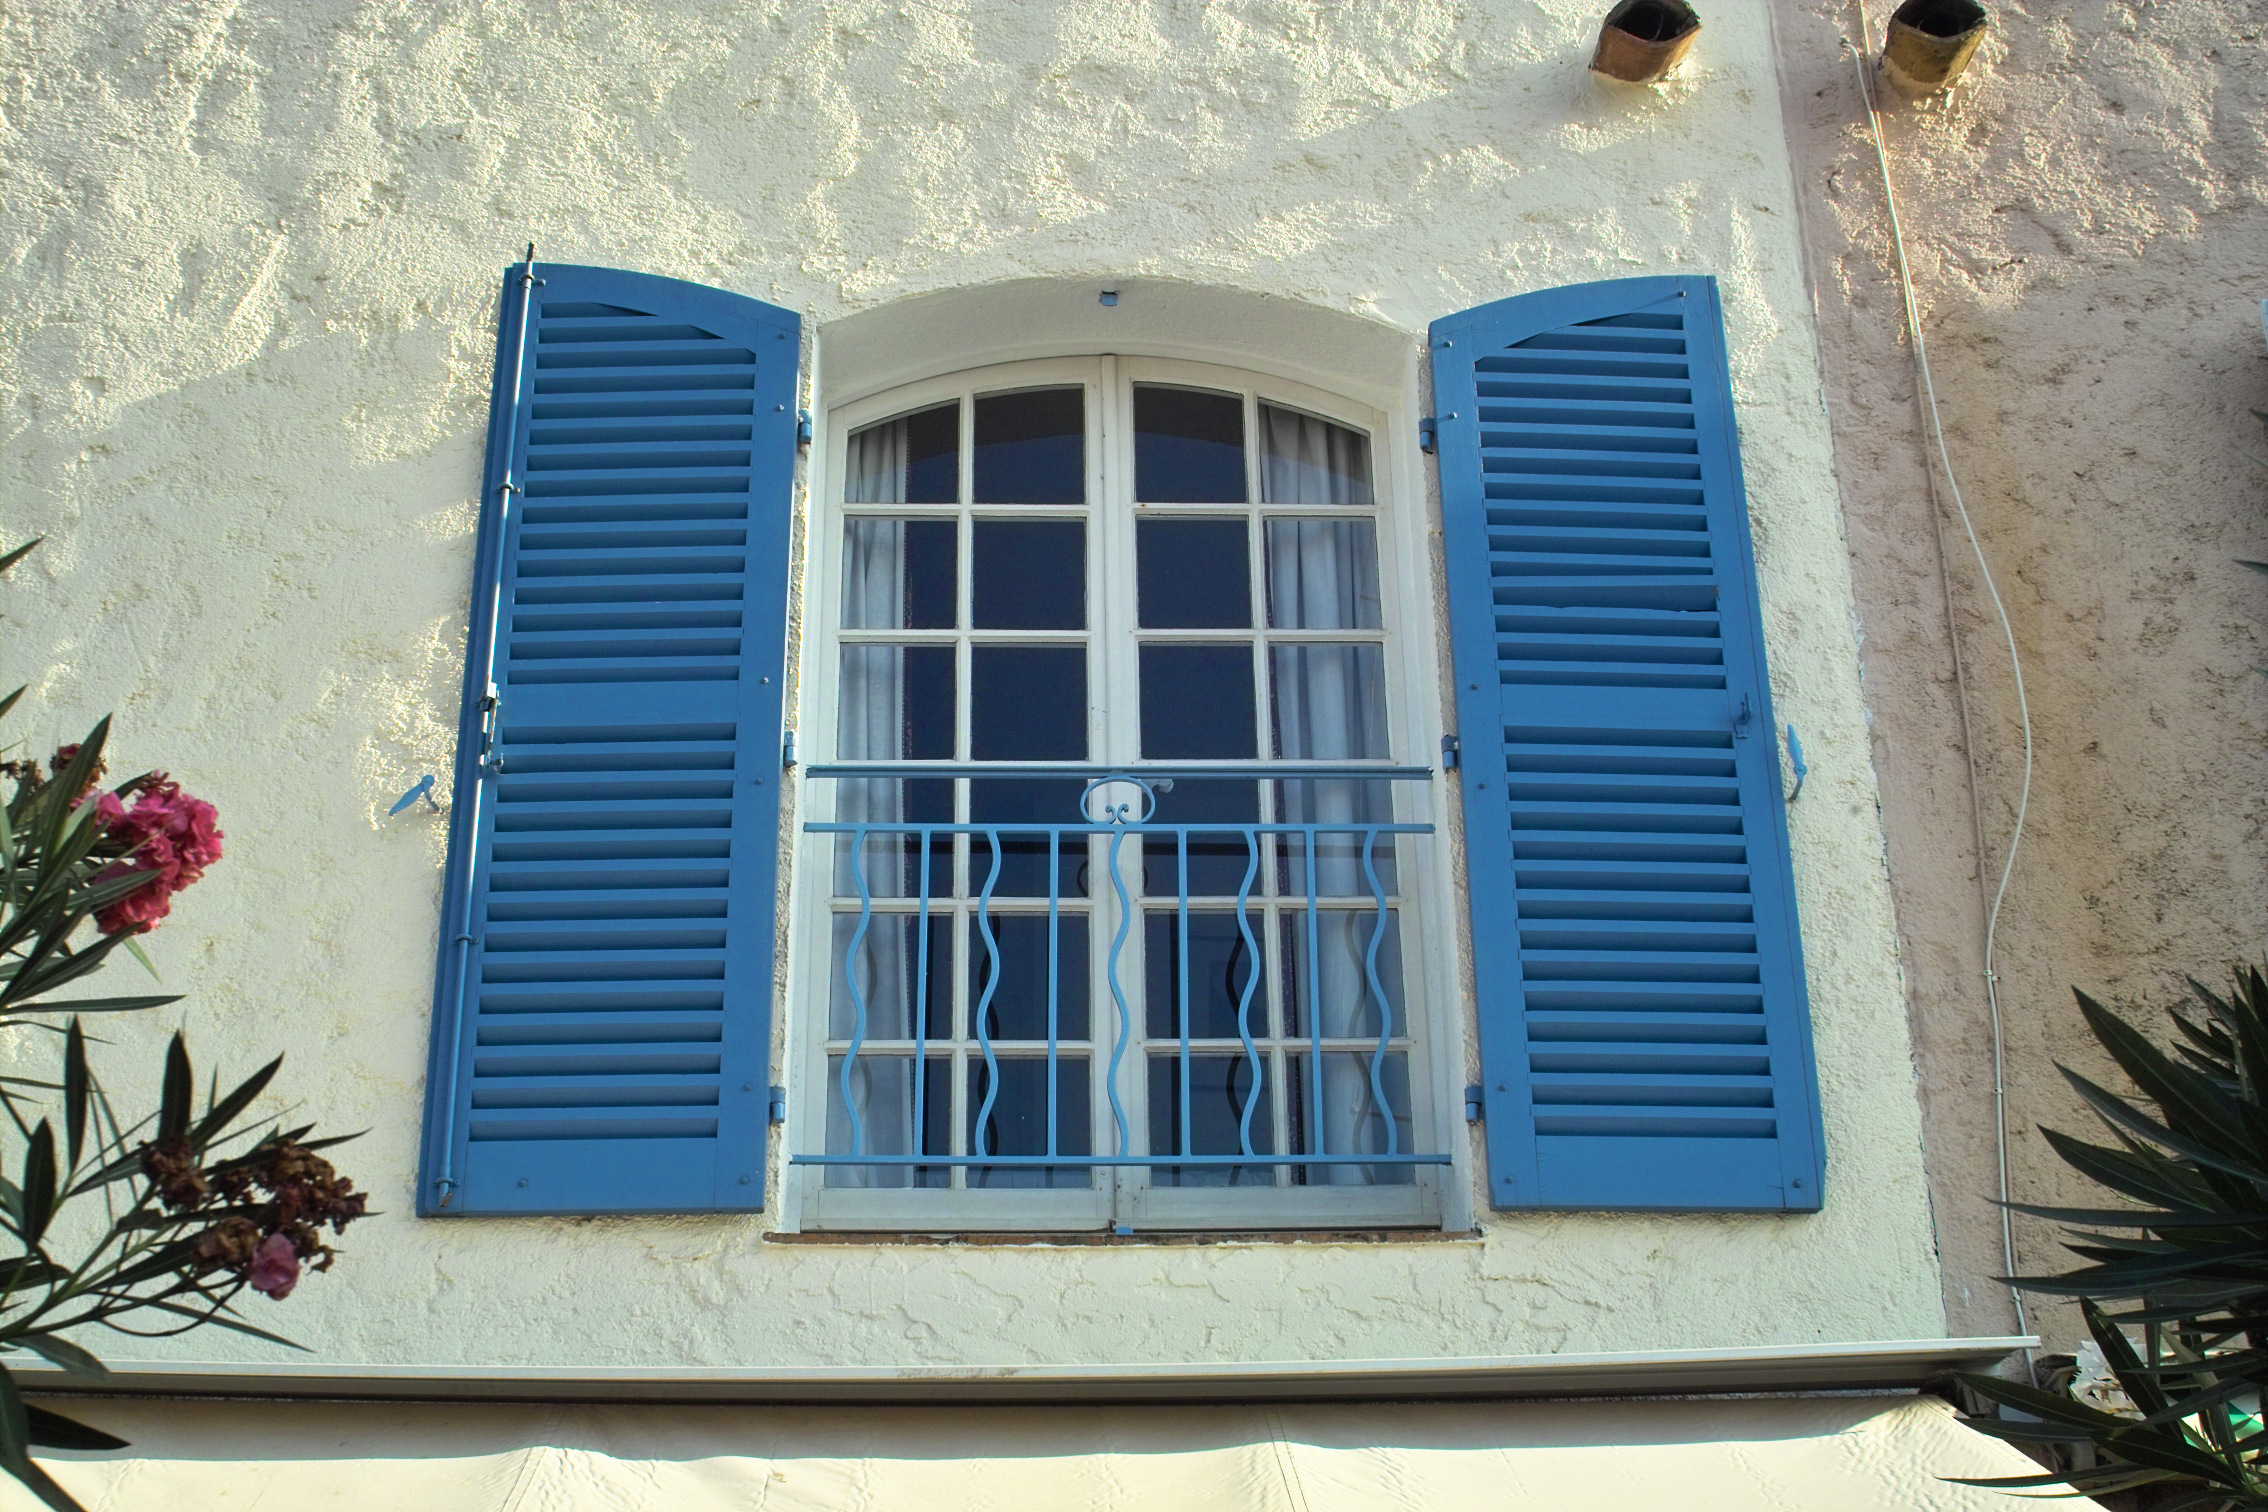 Outside window shutters 2017 grasscloth wallpaper - Where to buy exterior window shutters ...